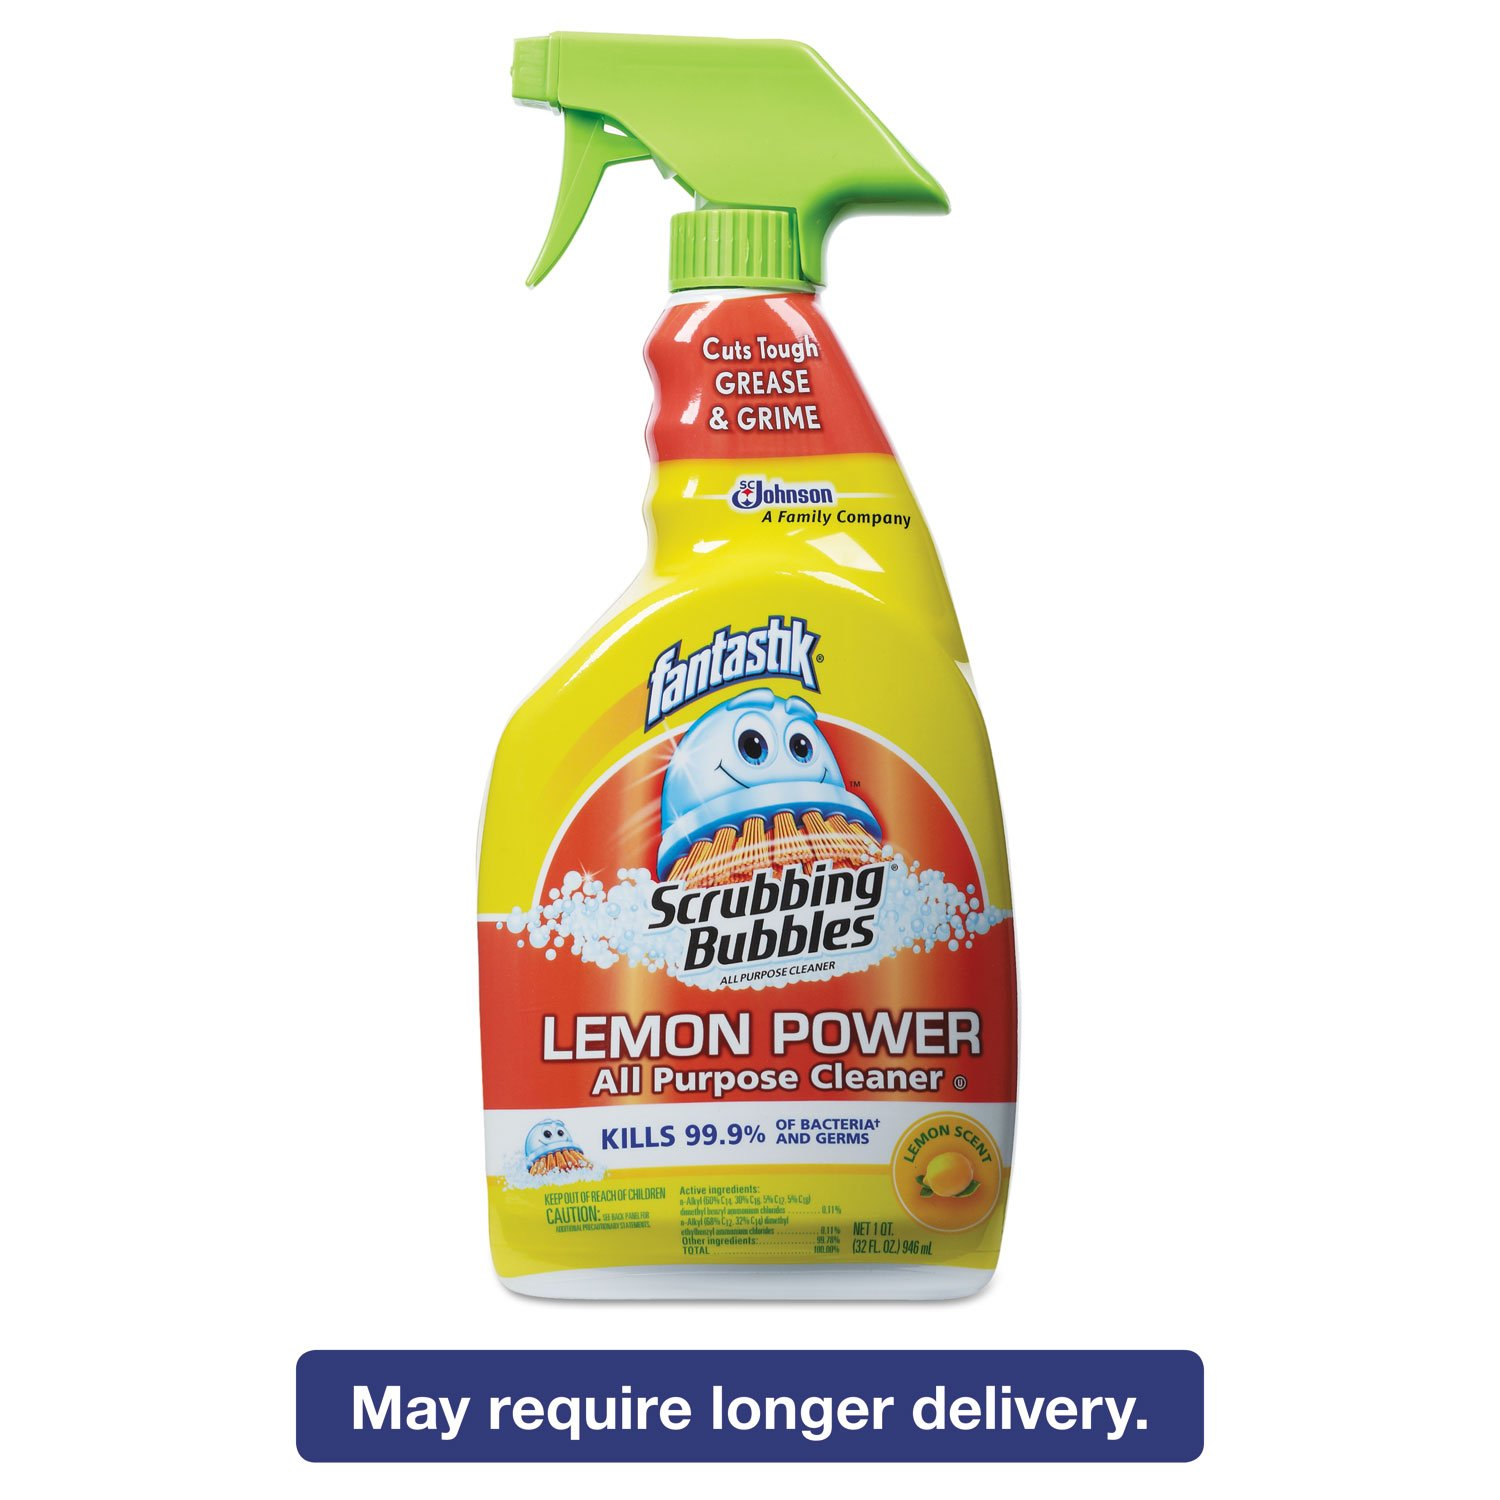 Fantastik 652513 Scrubbing Bubbles Lemon Power Antibacterial Cleaner, 32 oz Spray Bottle (Case of 8)